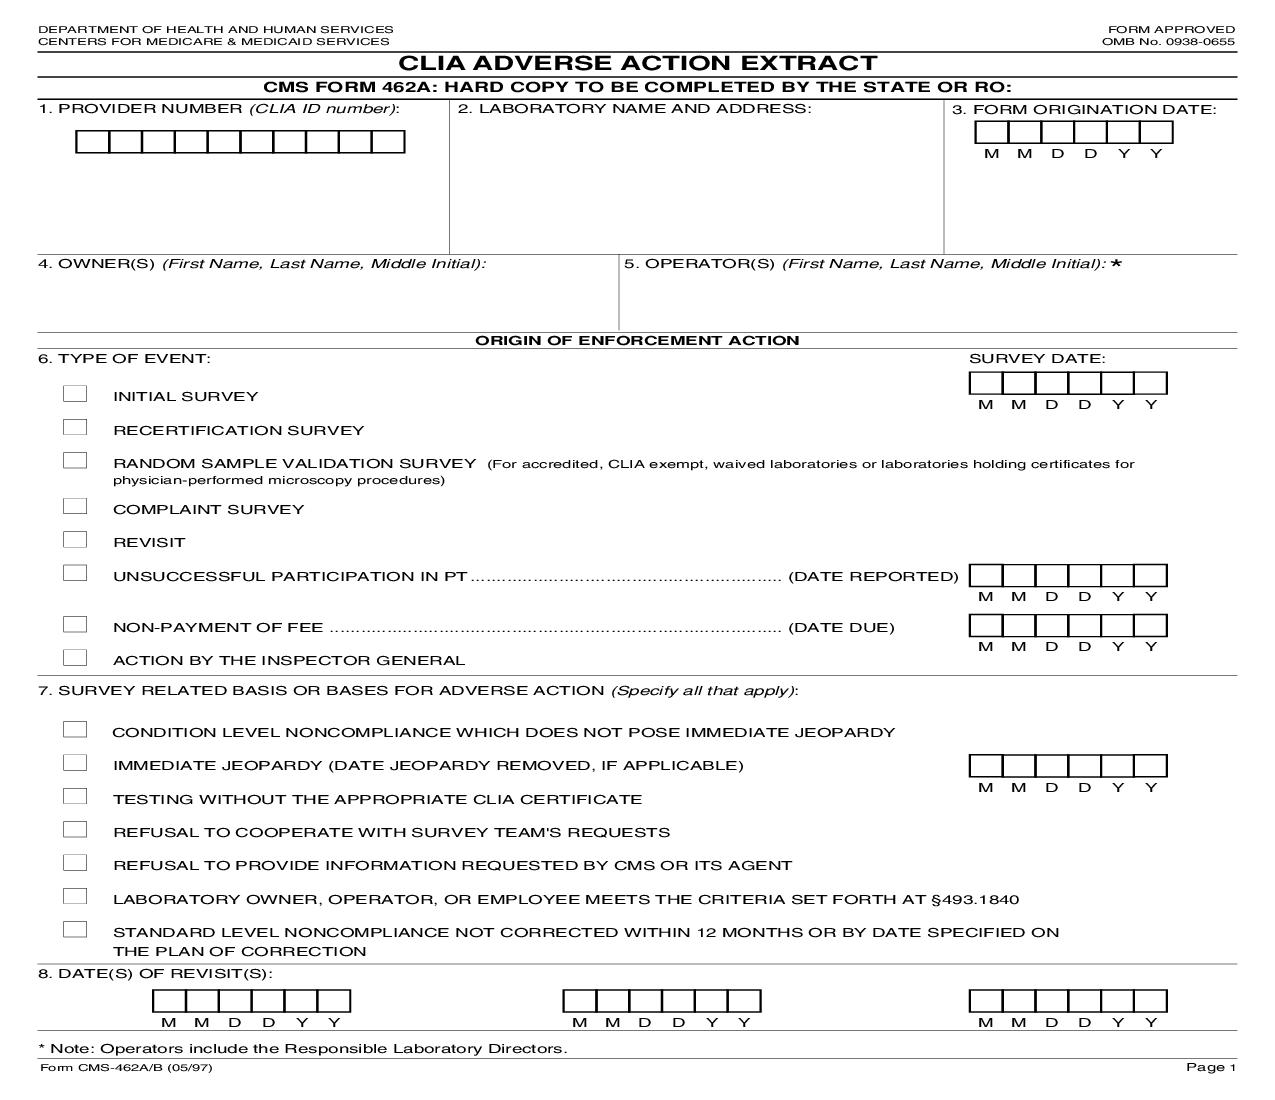 CLIA Adverse Action Extact {CMS-462A-B}   Pdf Fpdf Doc Docx   Official Federal Forms